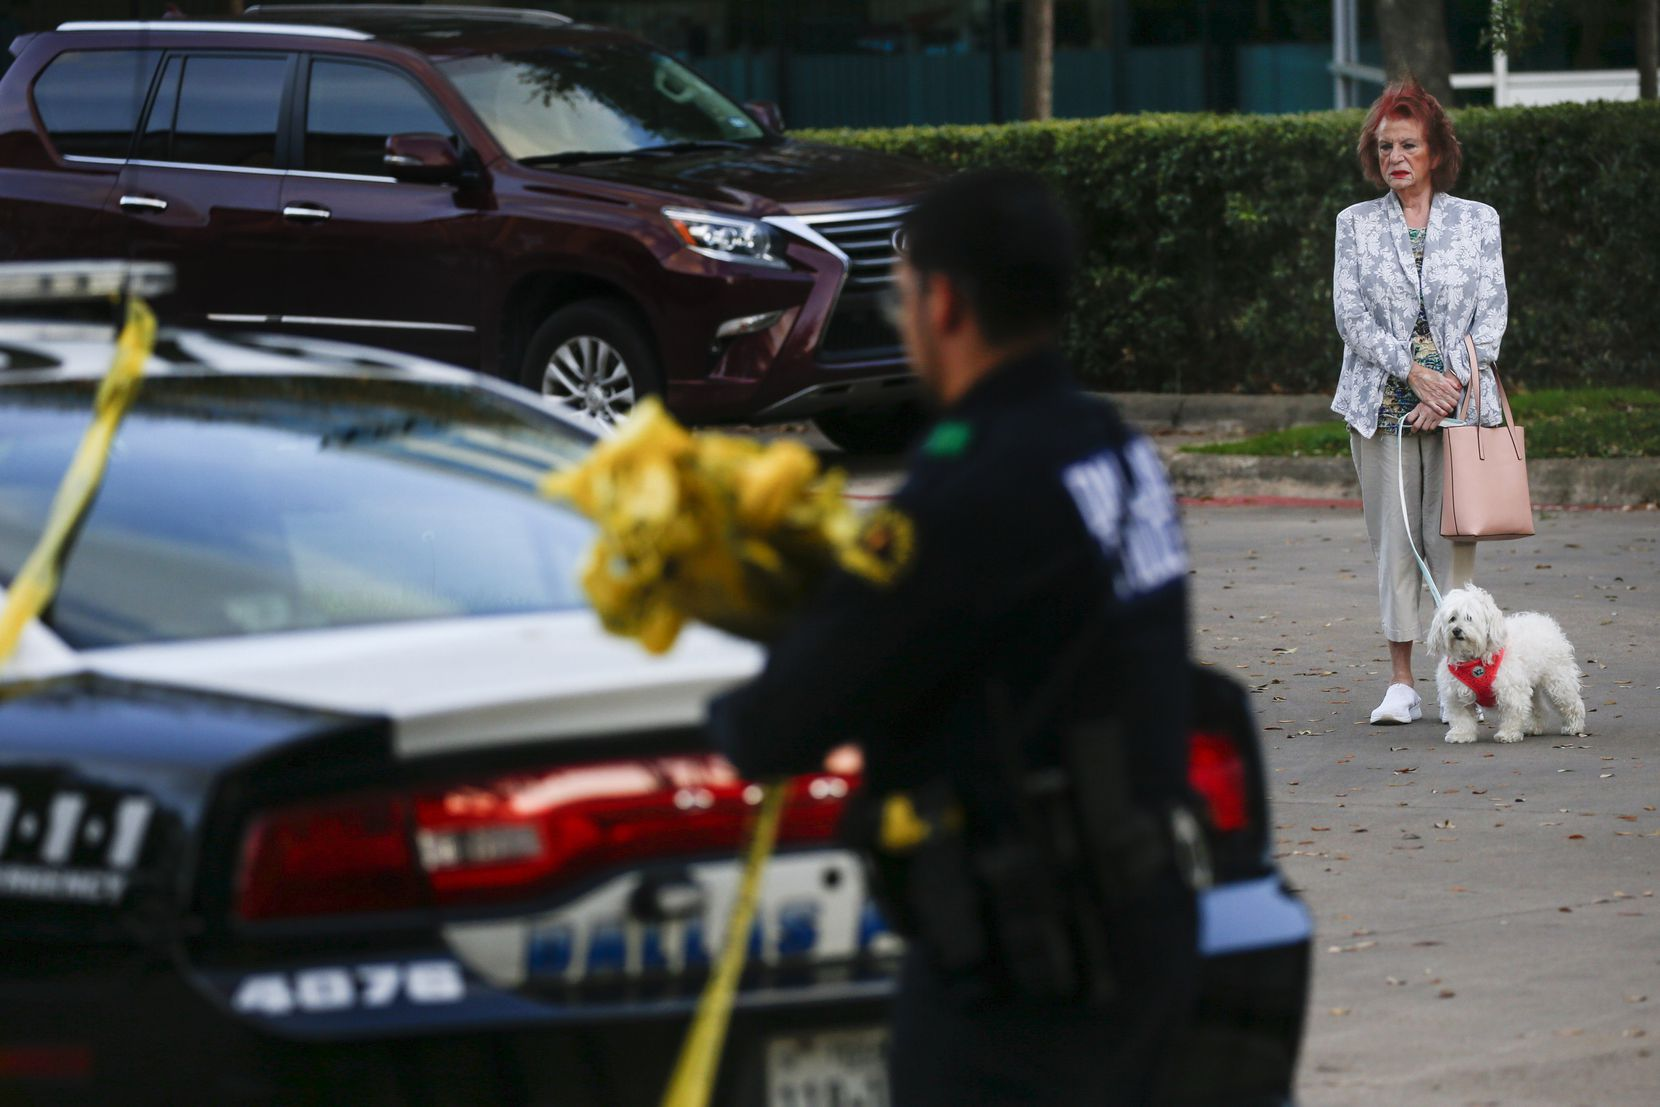 A bystander watches as Dallas police wrap up at a crime scene where two children and two adults were found shot to death at a Staybridge Suites near Keller Springs Road and the Dallas North Tollway on Tuesday, March 10, 2020 in Dallas. (Ryan Michalesko/The Dallas Morning News)